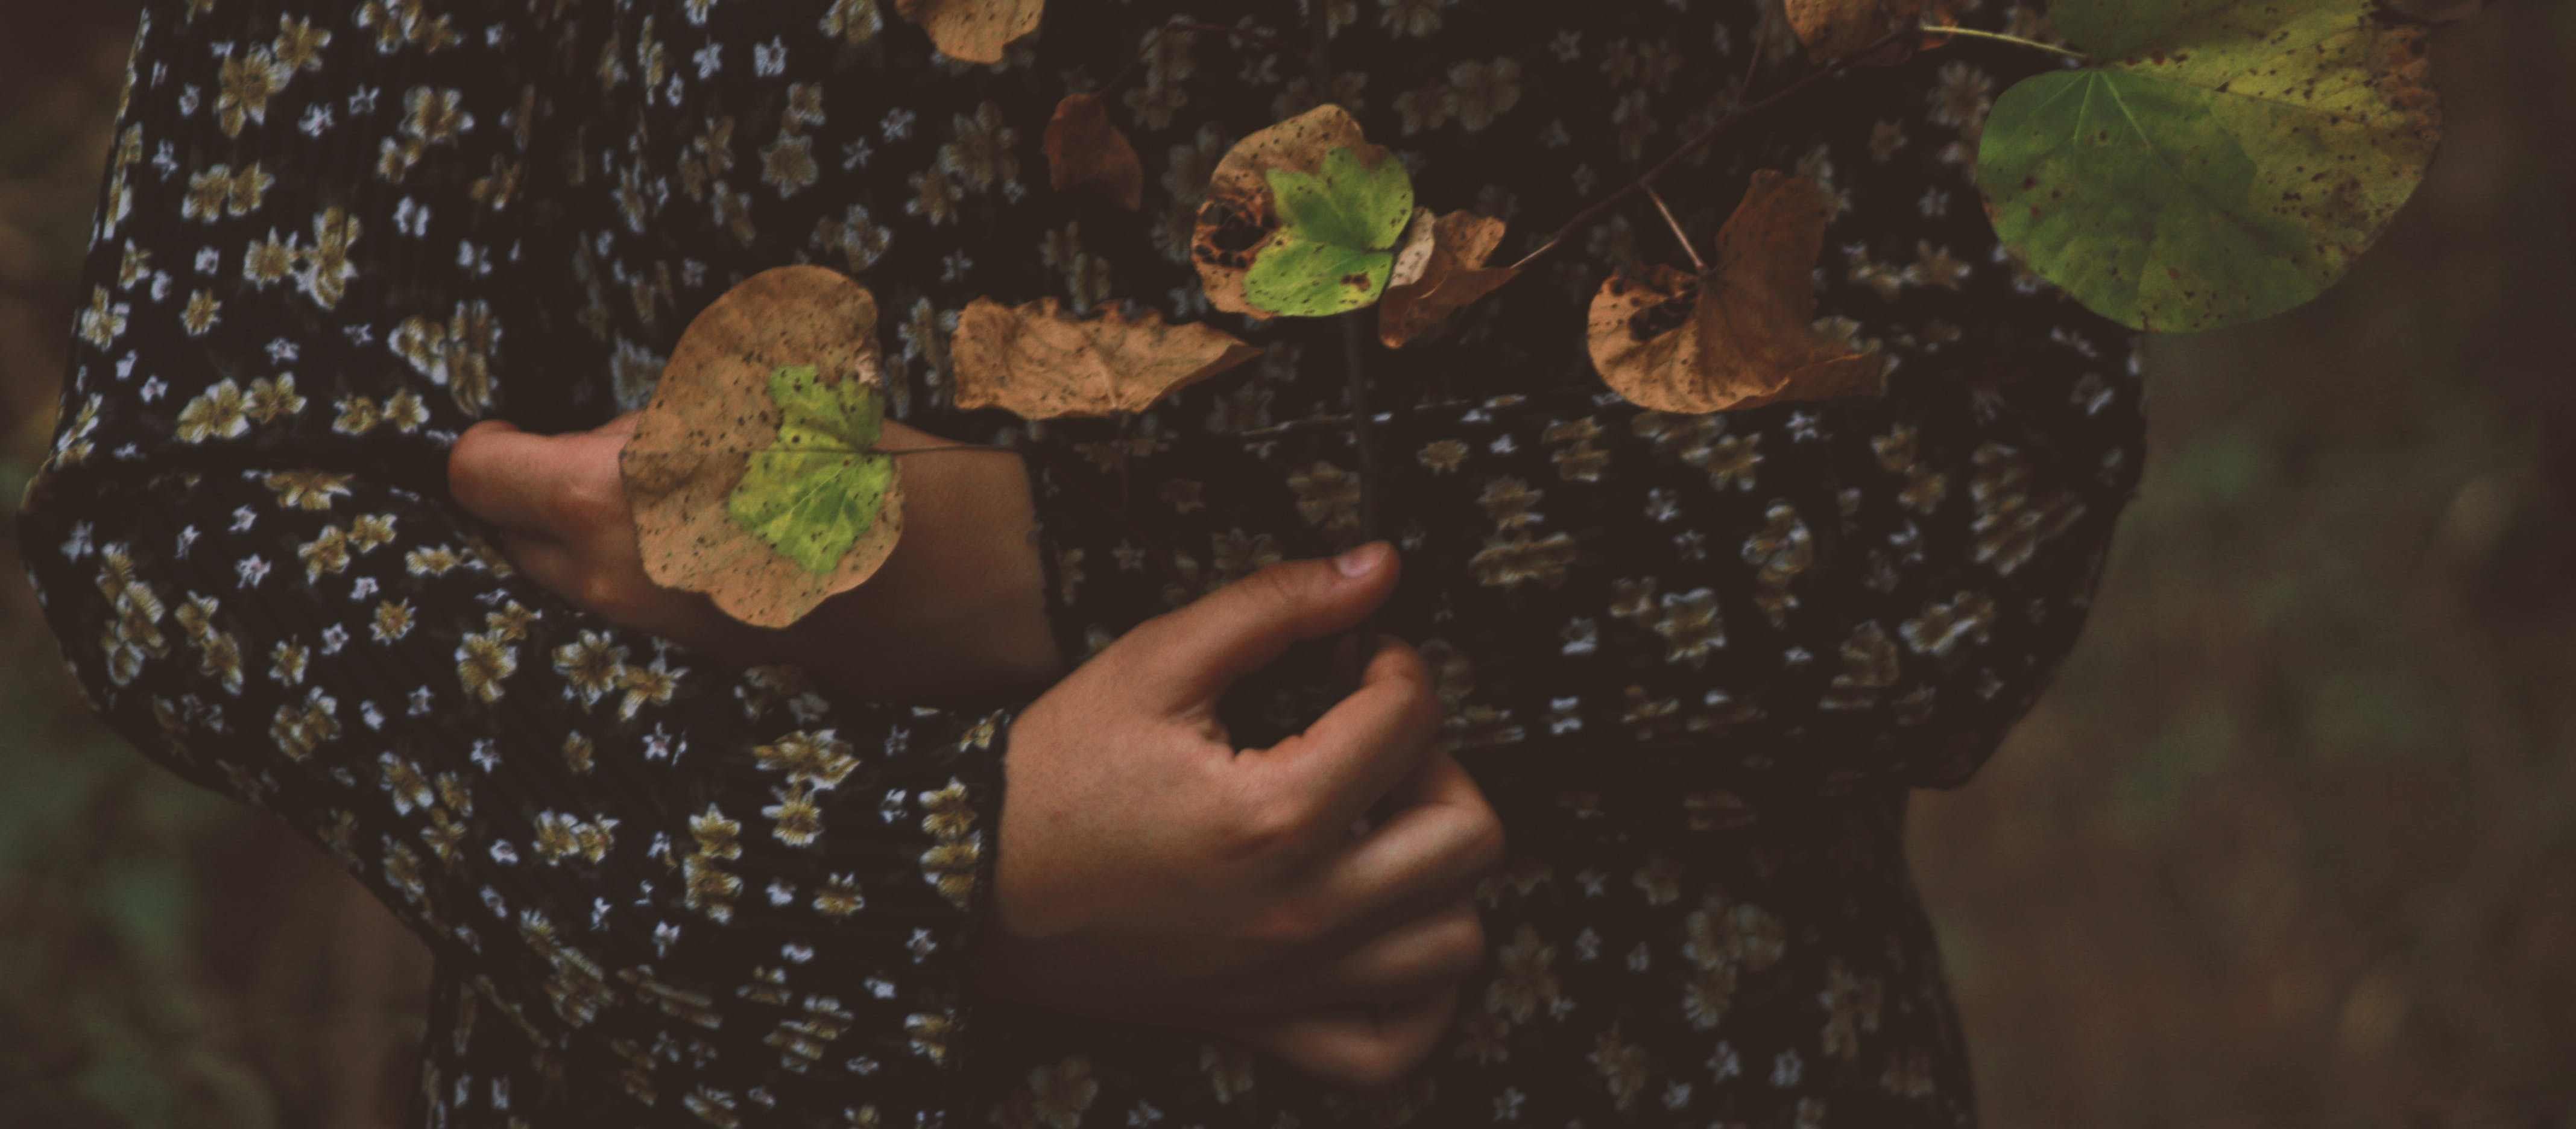 Photo of Person Wearing Black and White Floral Long-sleeved Shirt With Leaves All over in Top